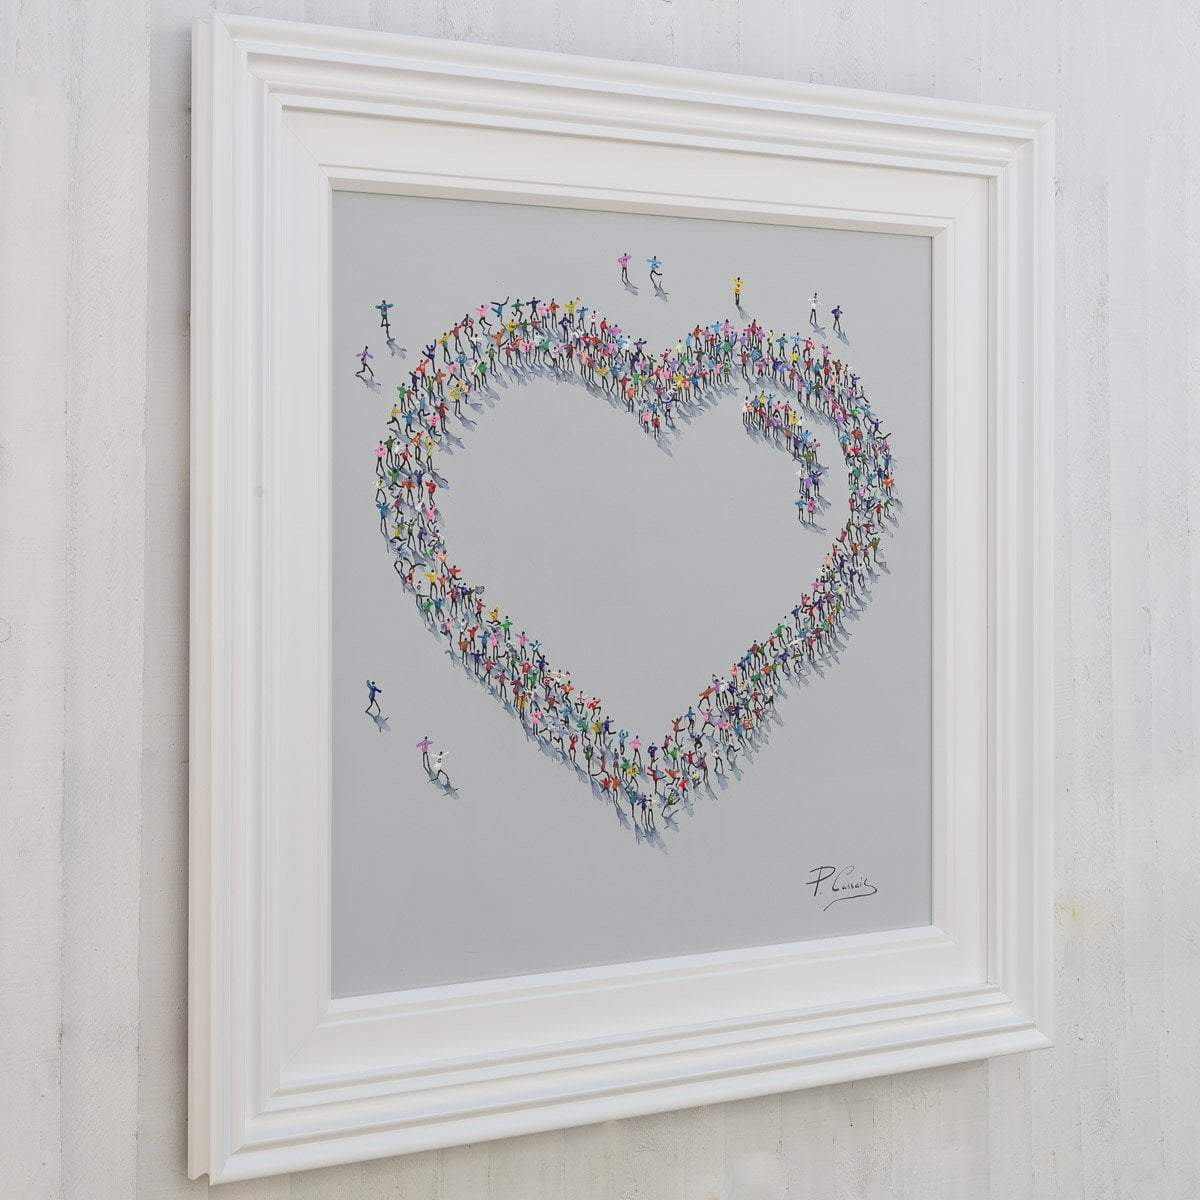 All Together Now - Original Paola Cassais Framed